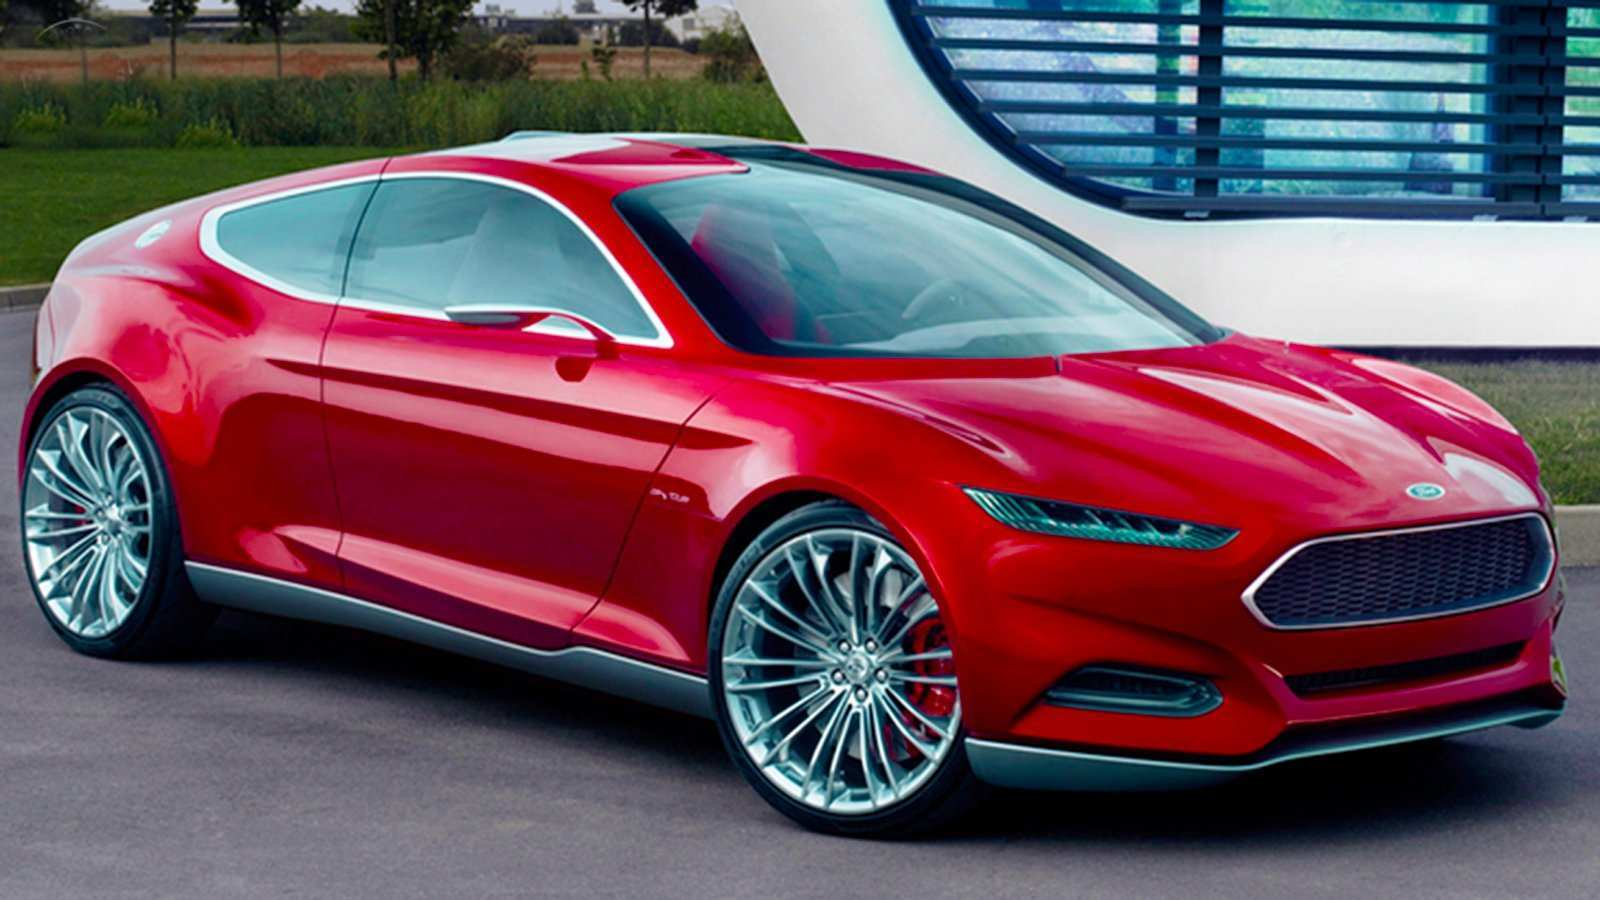 40 A Ford Mustang Hybrid 2020 Images